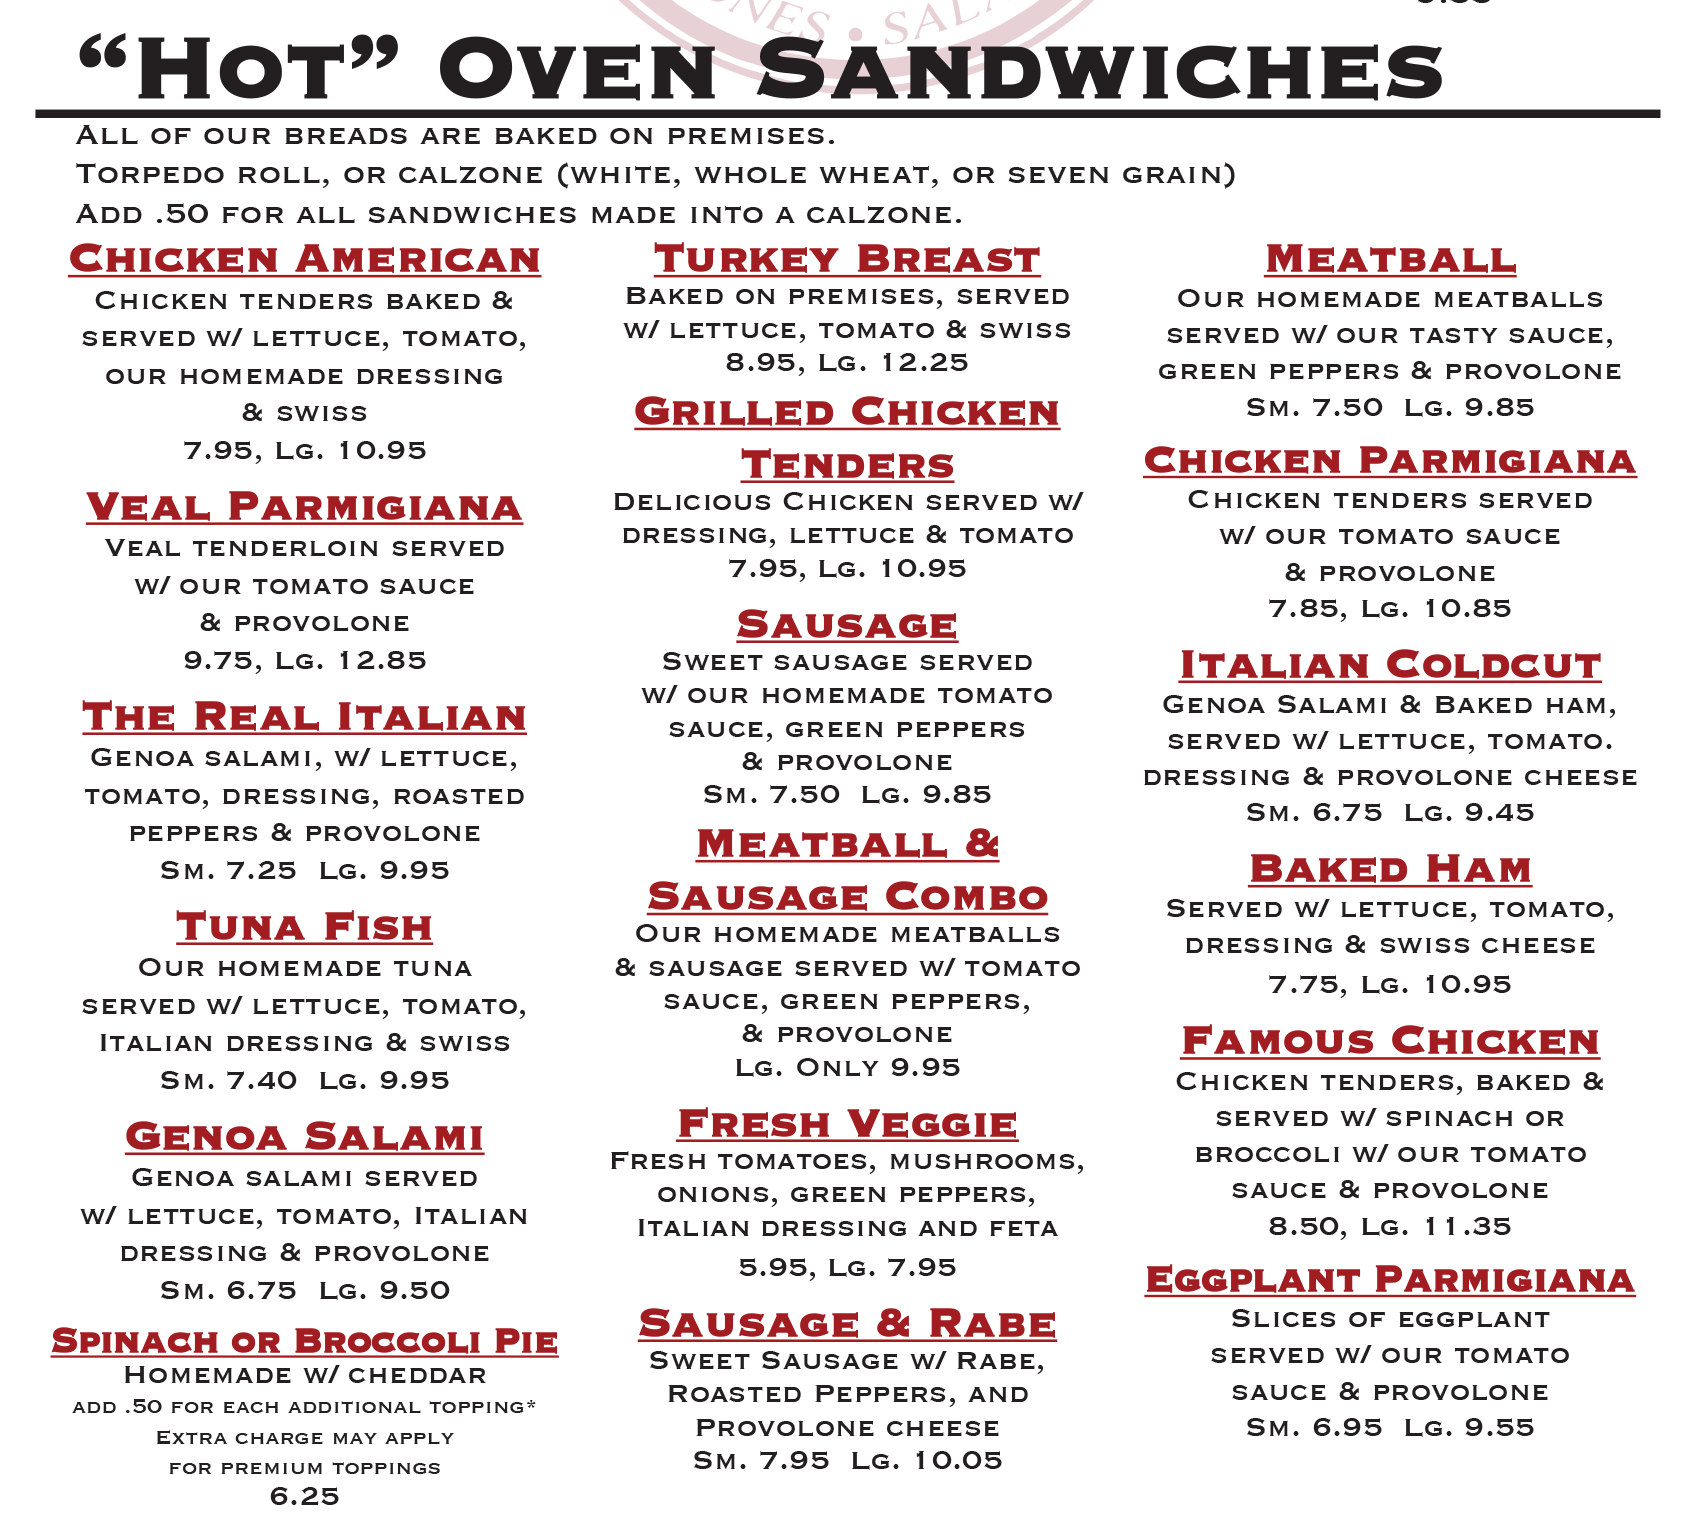 hot oven sandwiches cranston ri